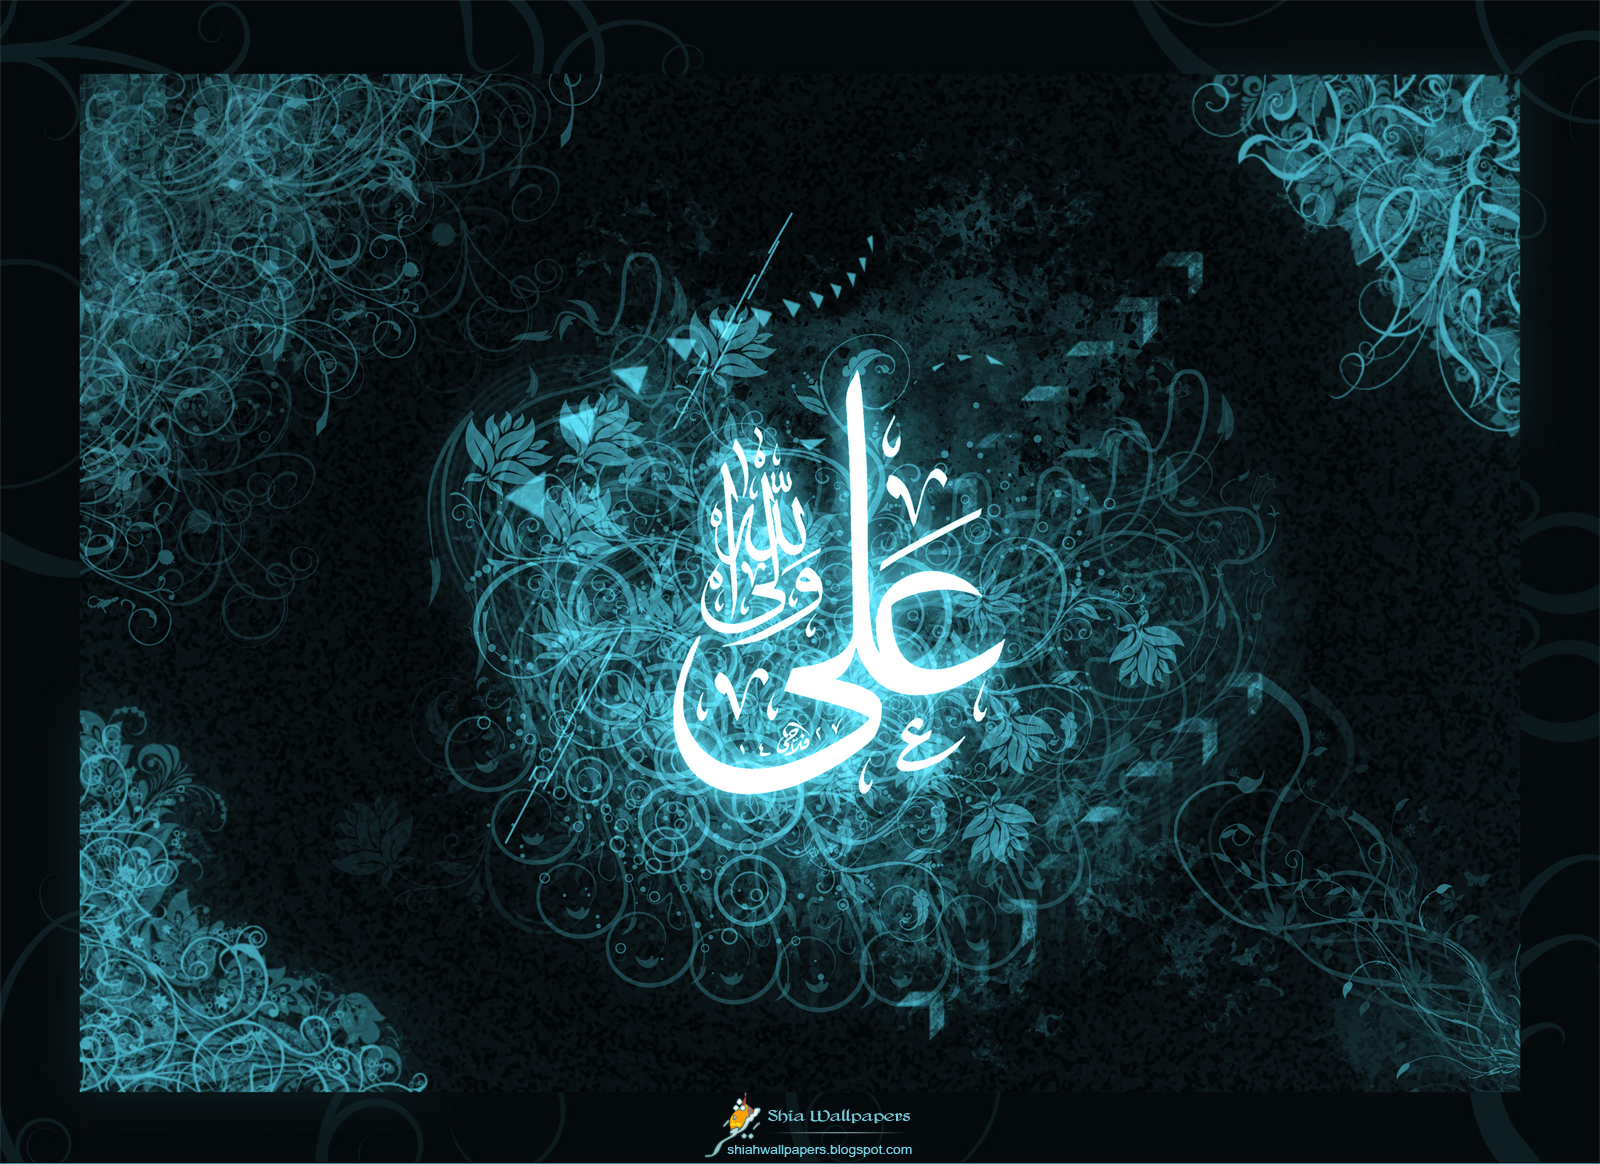 Imam ali wallpaper sf wallpaper - Imam wallpaper ...